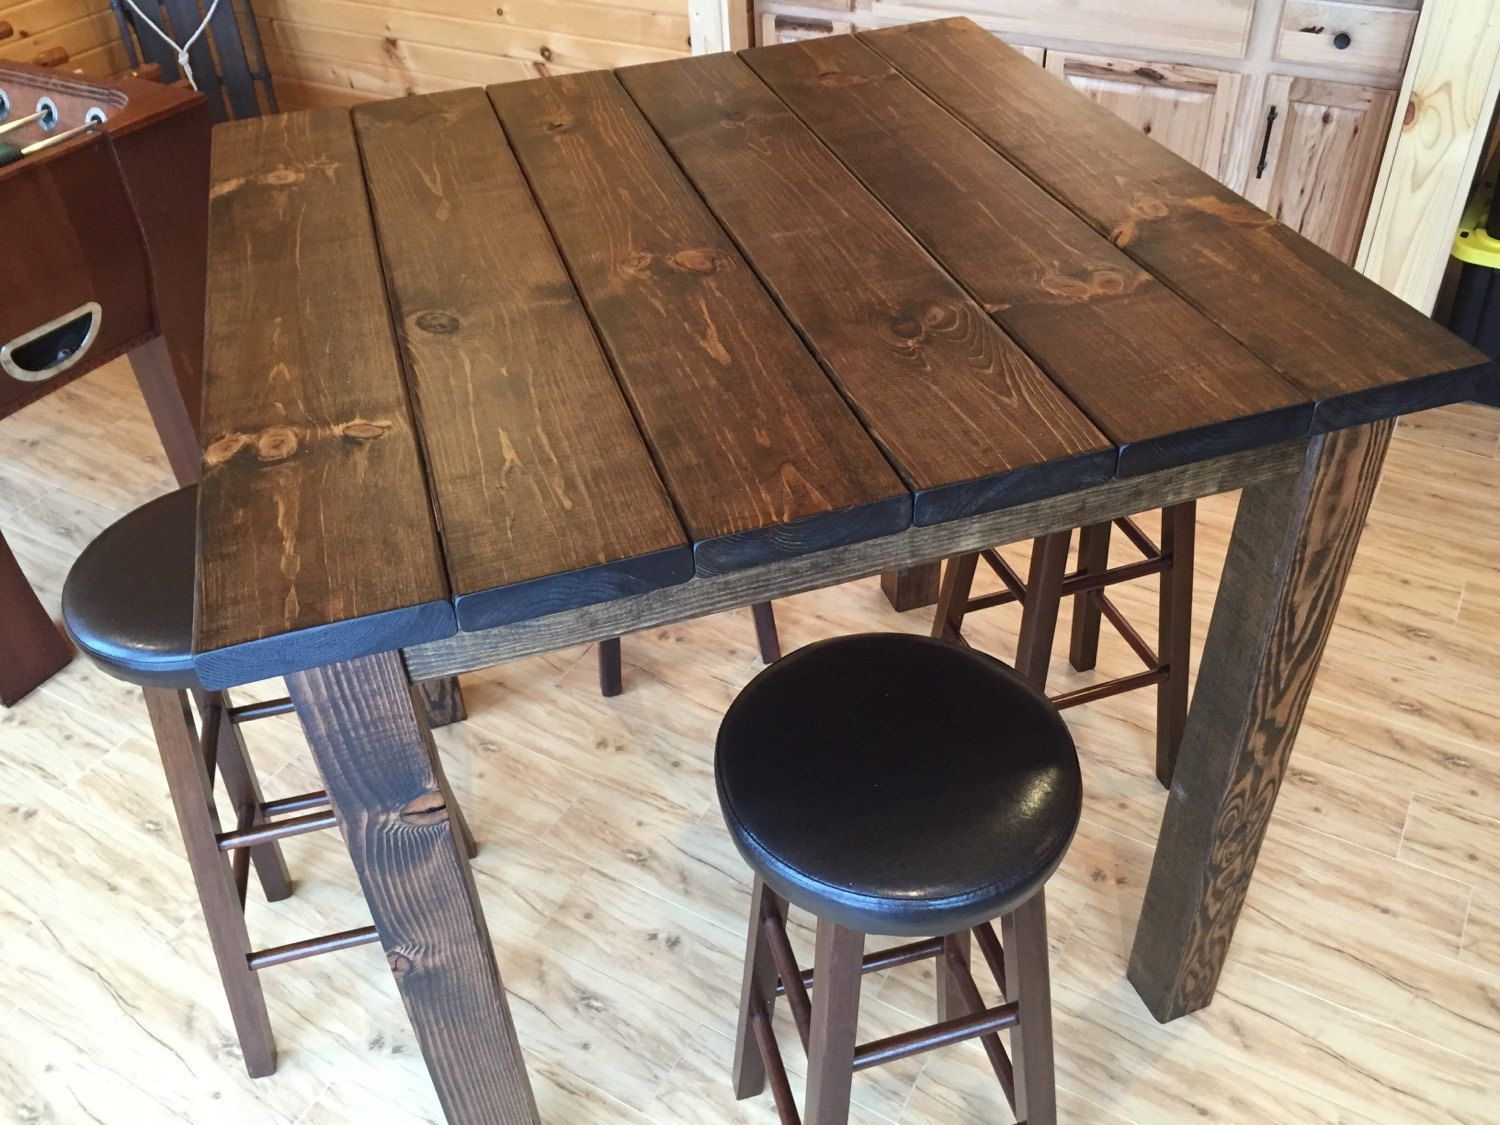 36 square rustic reclaimed wood bar table bar height table high top table family room. Black Bedroom Furniture Sets. Home Design Ideas